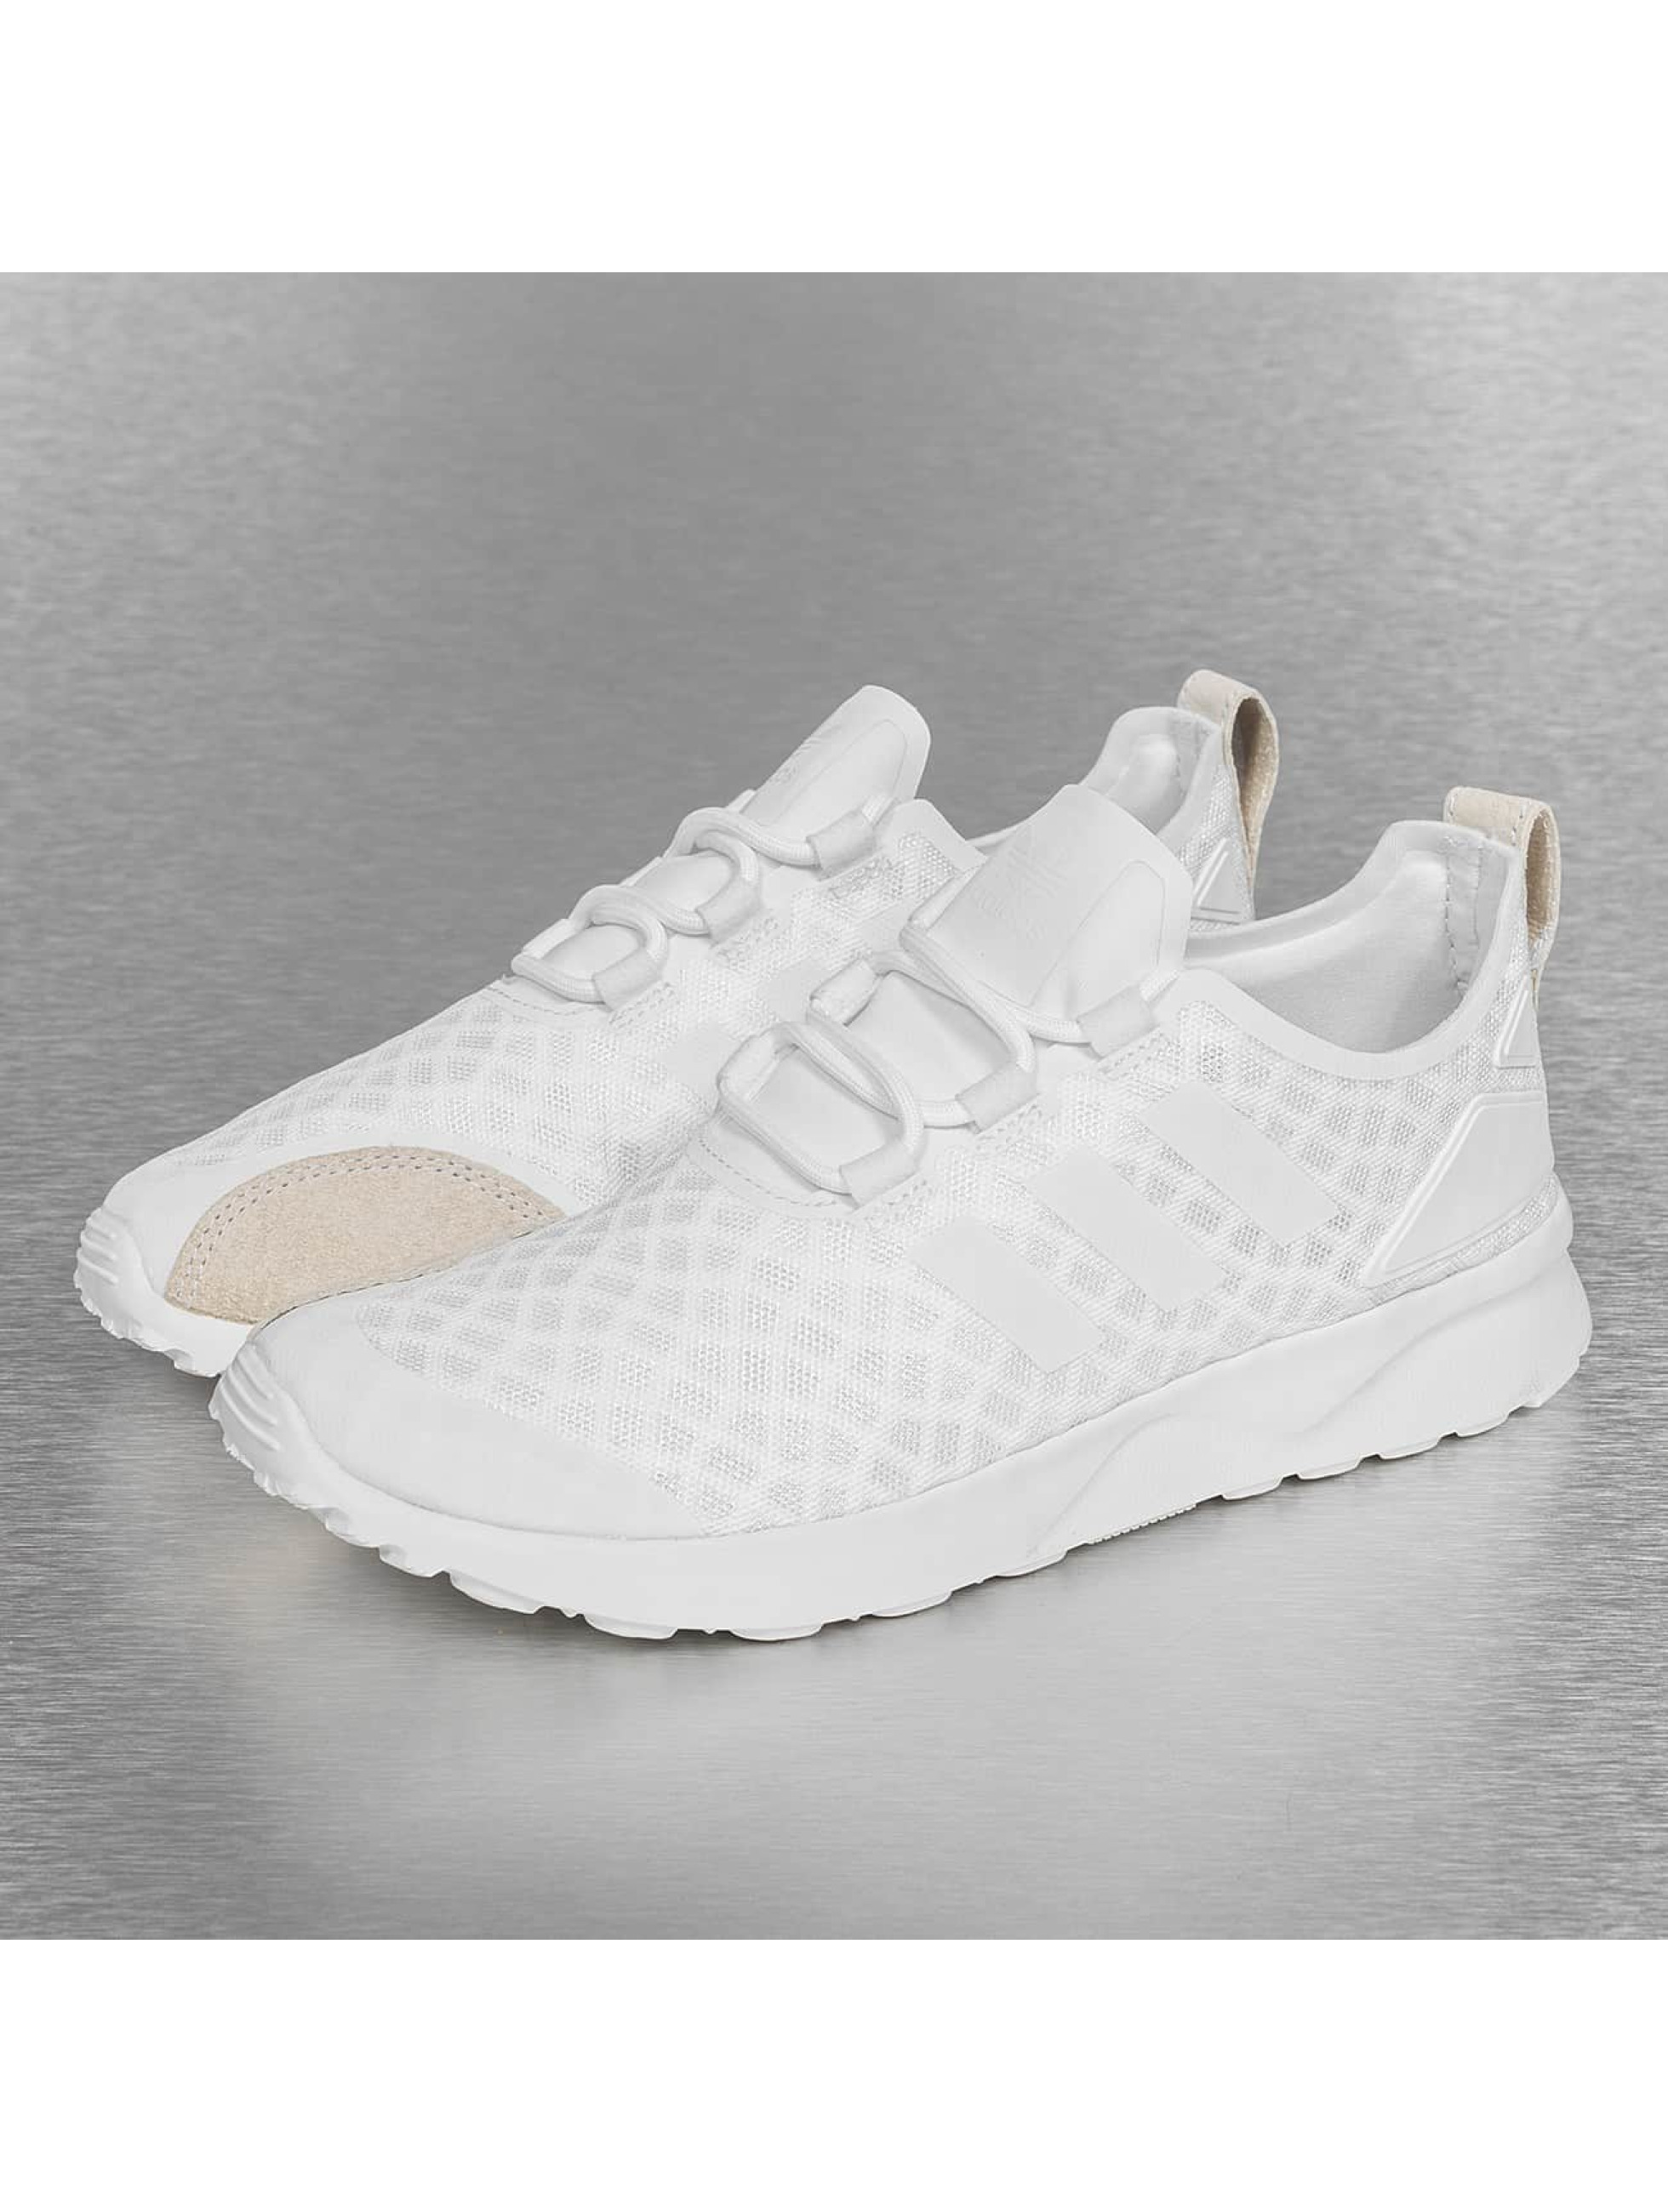 Zx Flux Adv Verve Core White